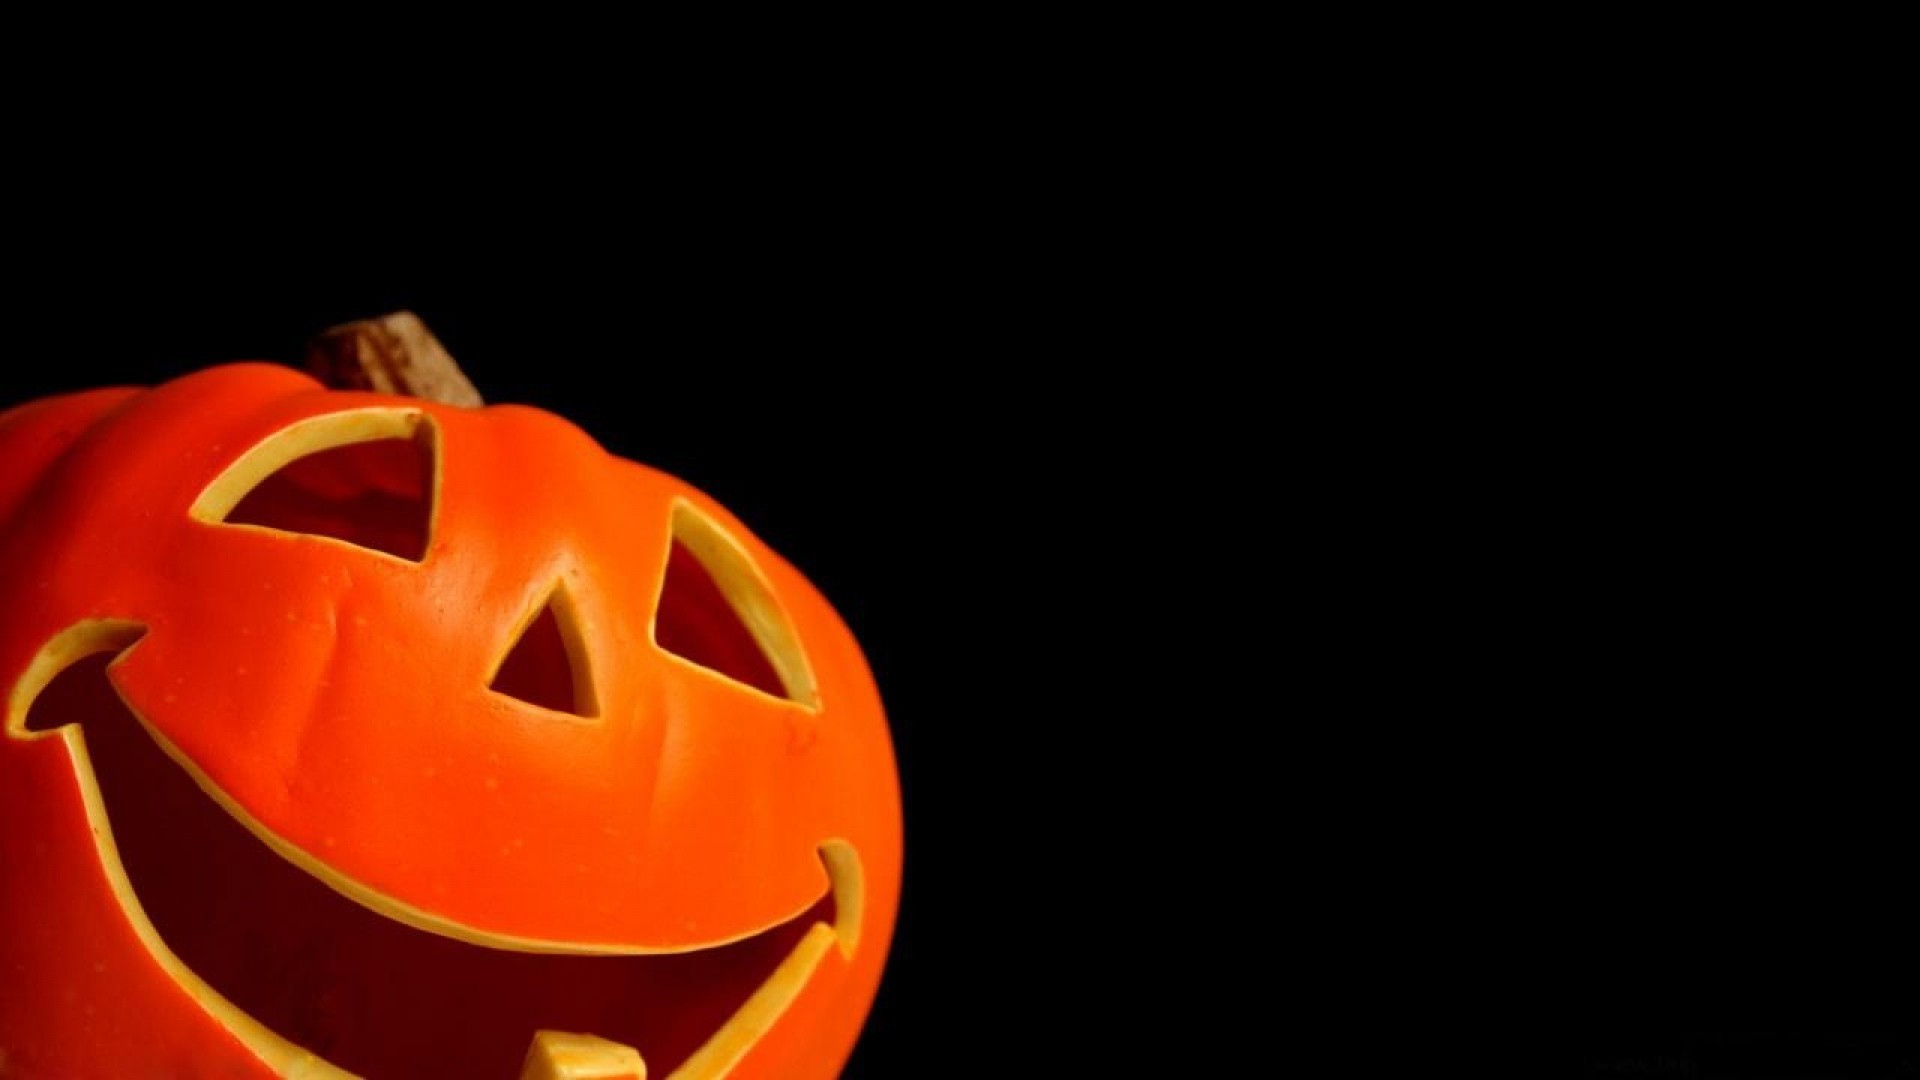 1920x1080  Download Pumpkin Holiday Black background Halloween Smiling  wallpaper